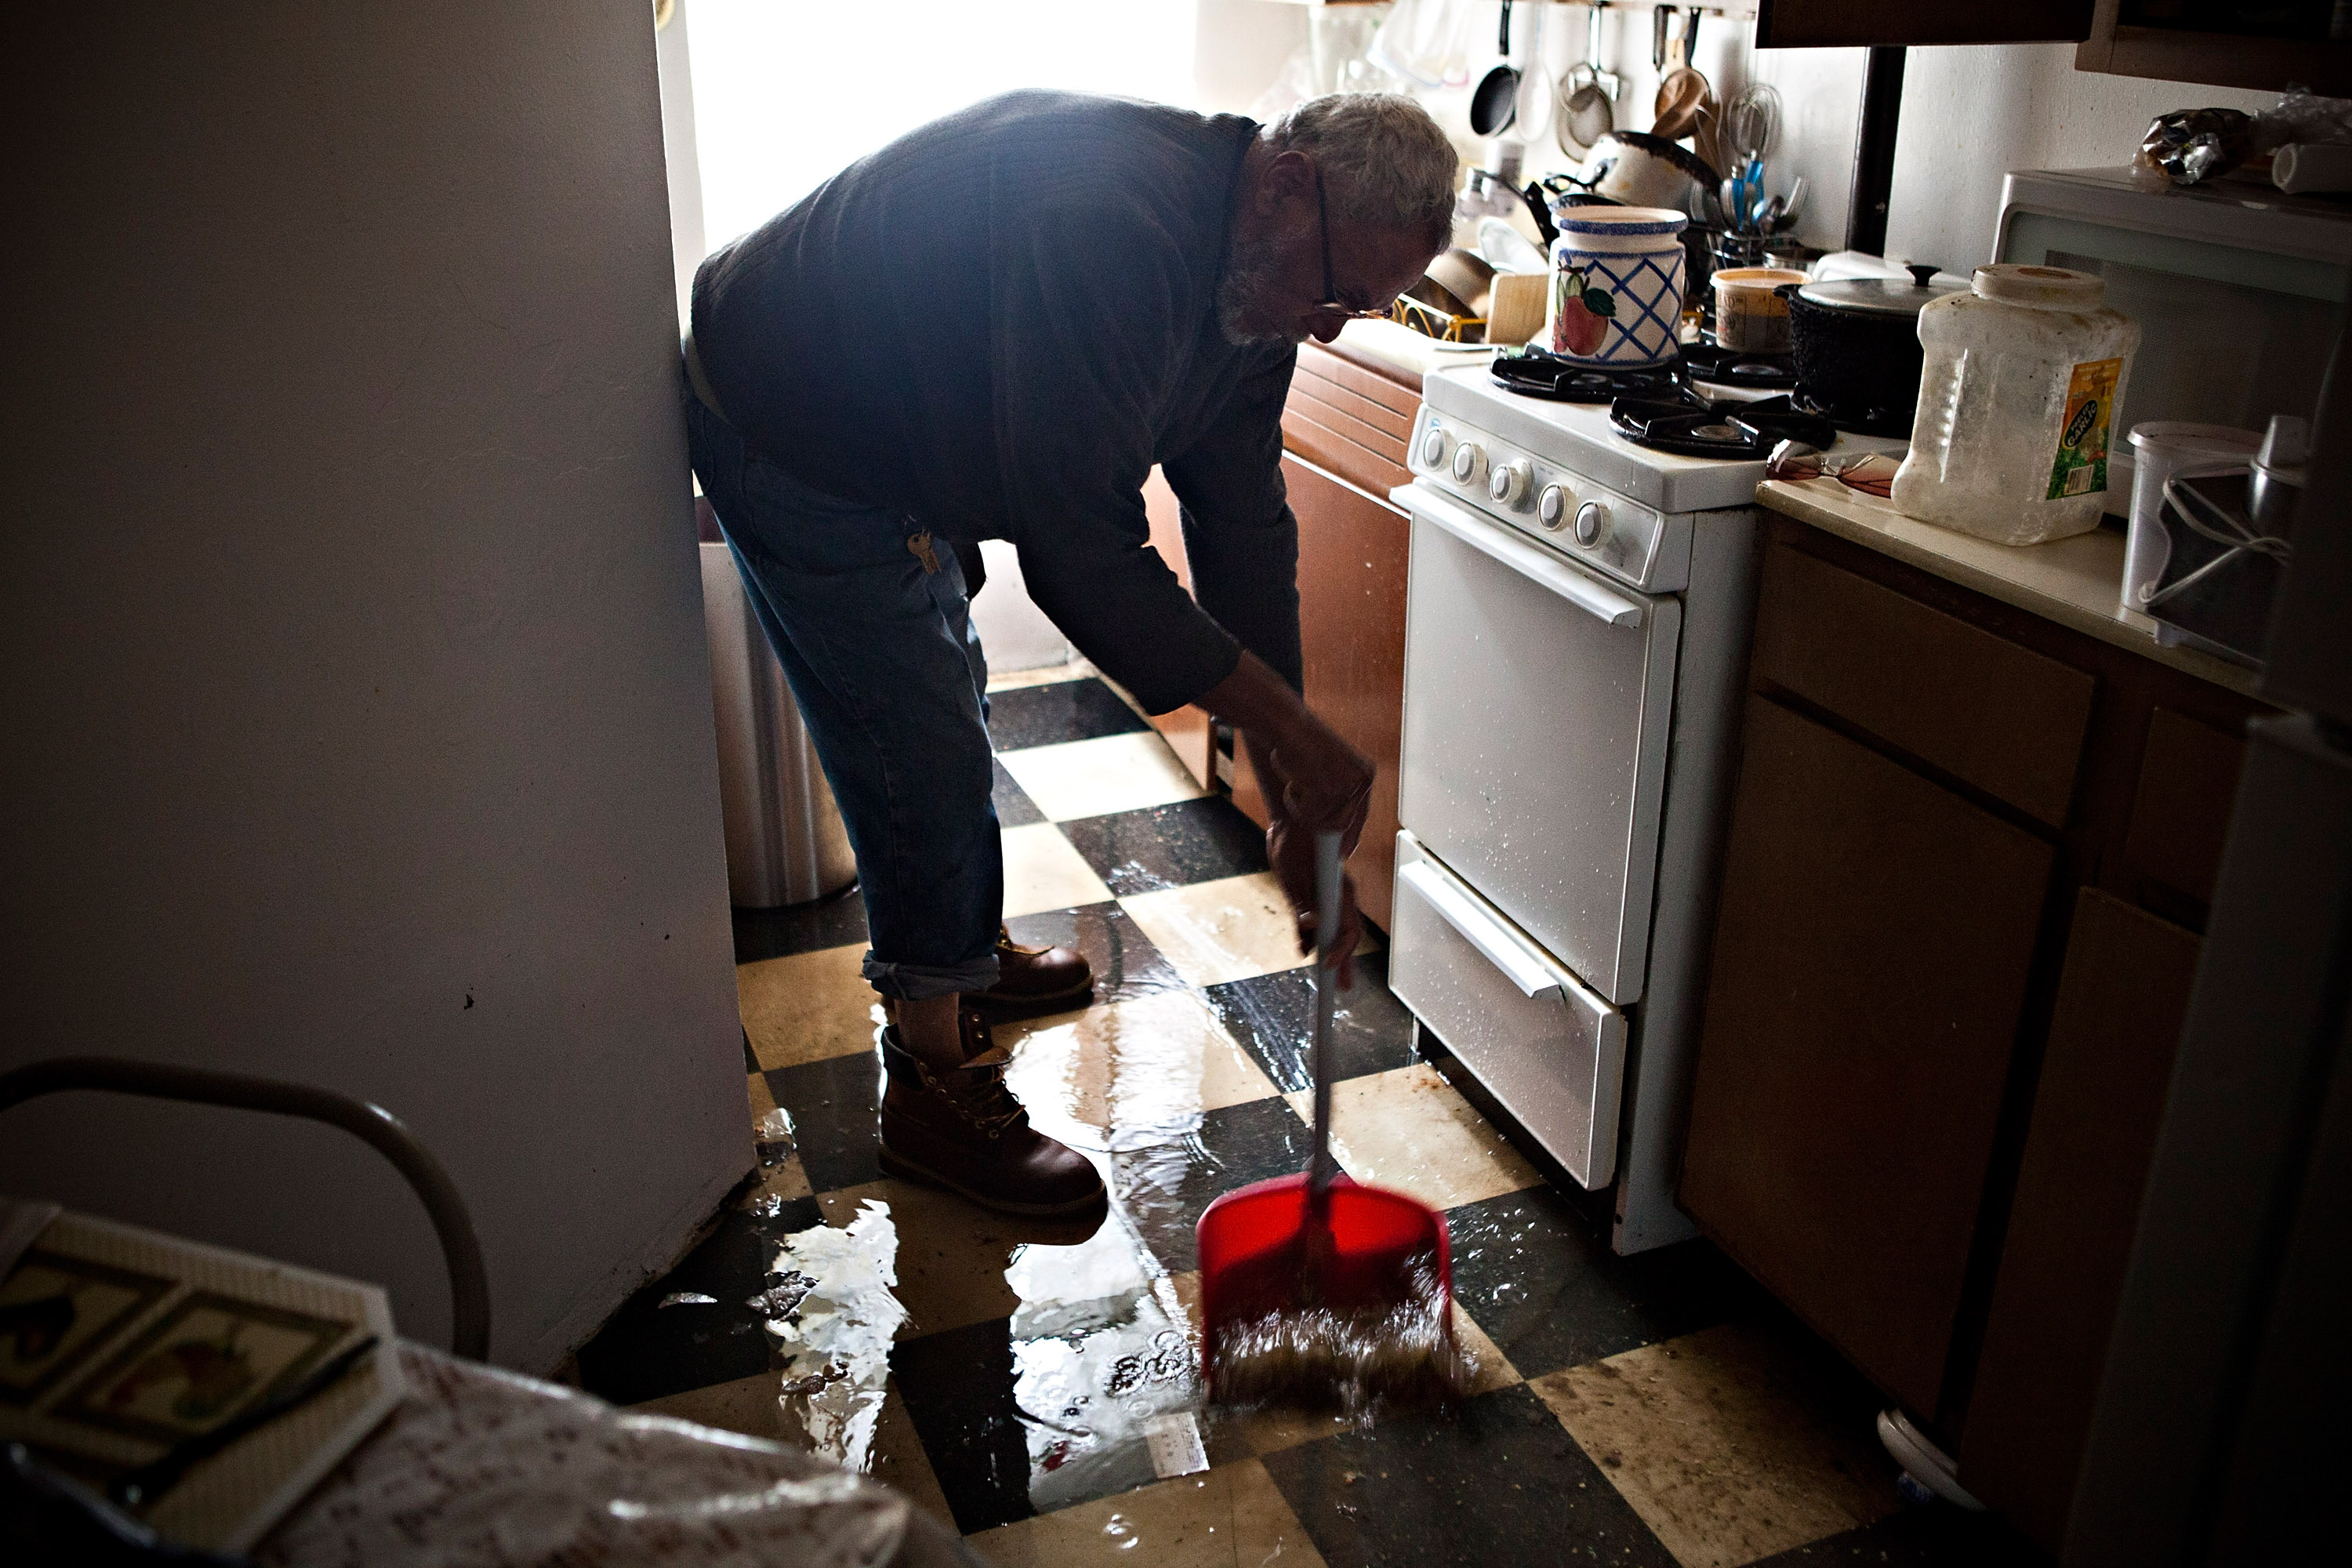 Jolito Ortiz helps sweep water out of his friend's apartment on the Lower East Side after Hurricane Sandy. (Photo by Andrew Burton/Getty Images)